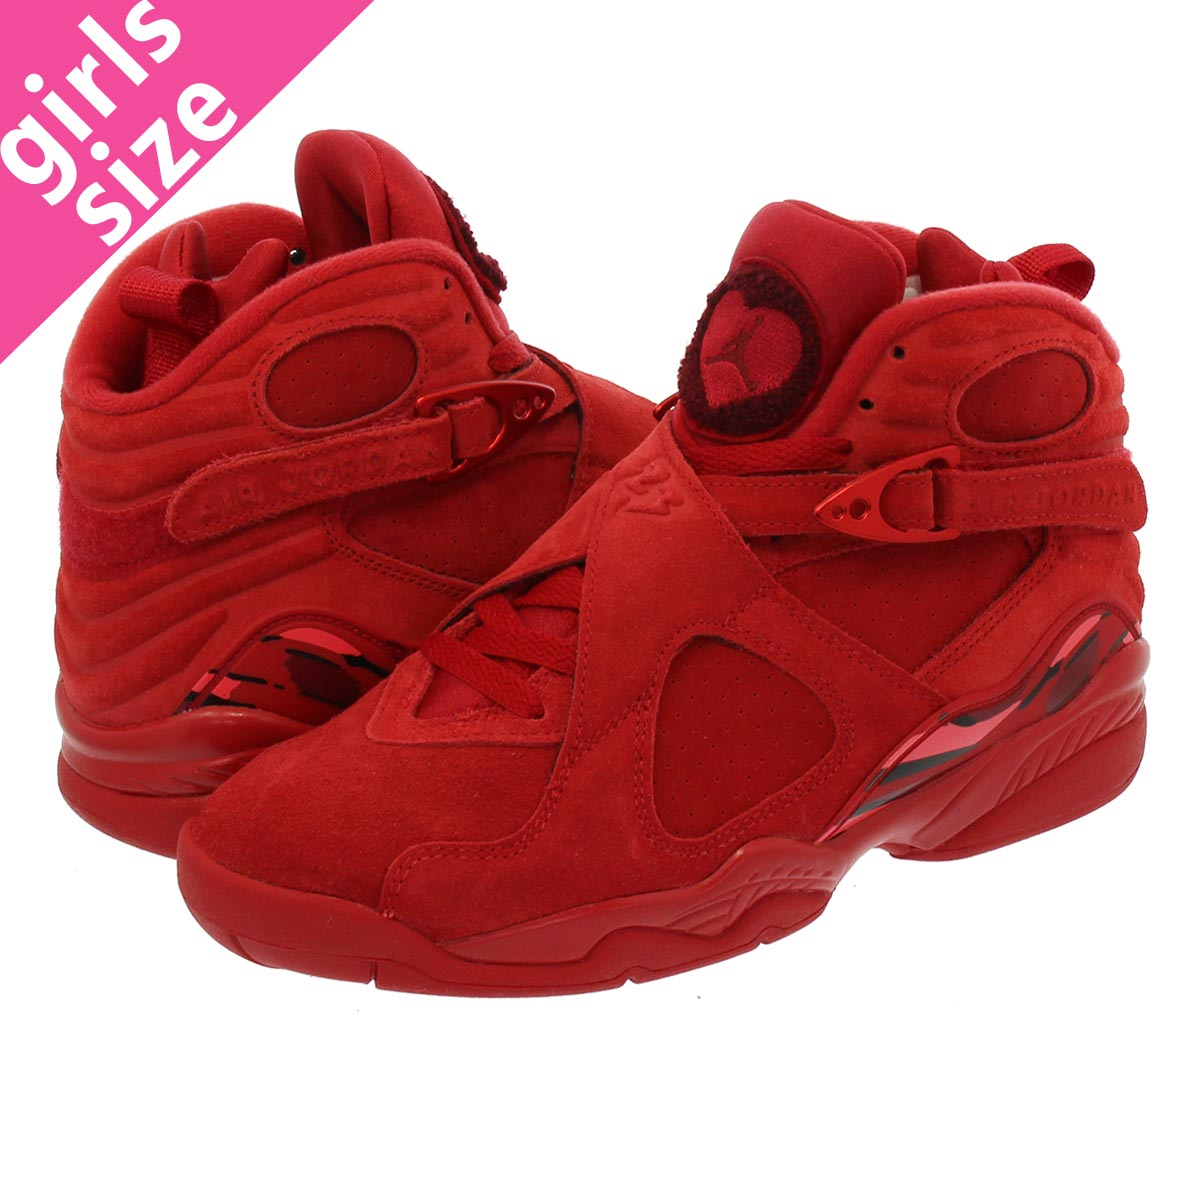 5b4dac0c11271b uk retro 11 size 8 d6849 cd789  shop nike wmns air jordan 8 retro vday nike  women air jordan 8 nostalgic gym red